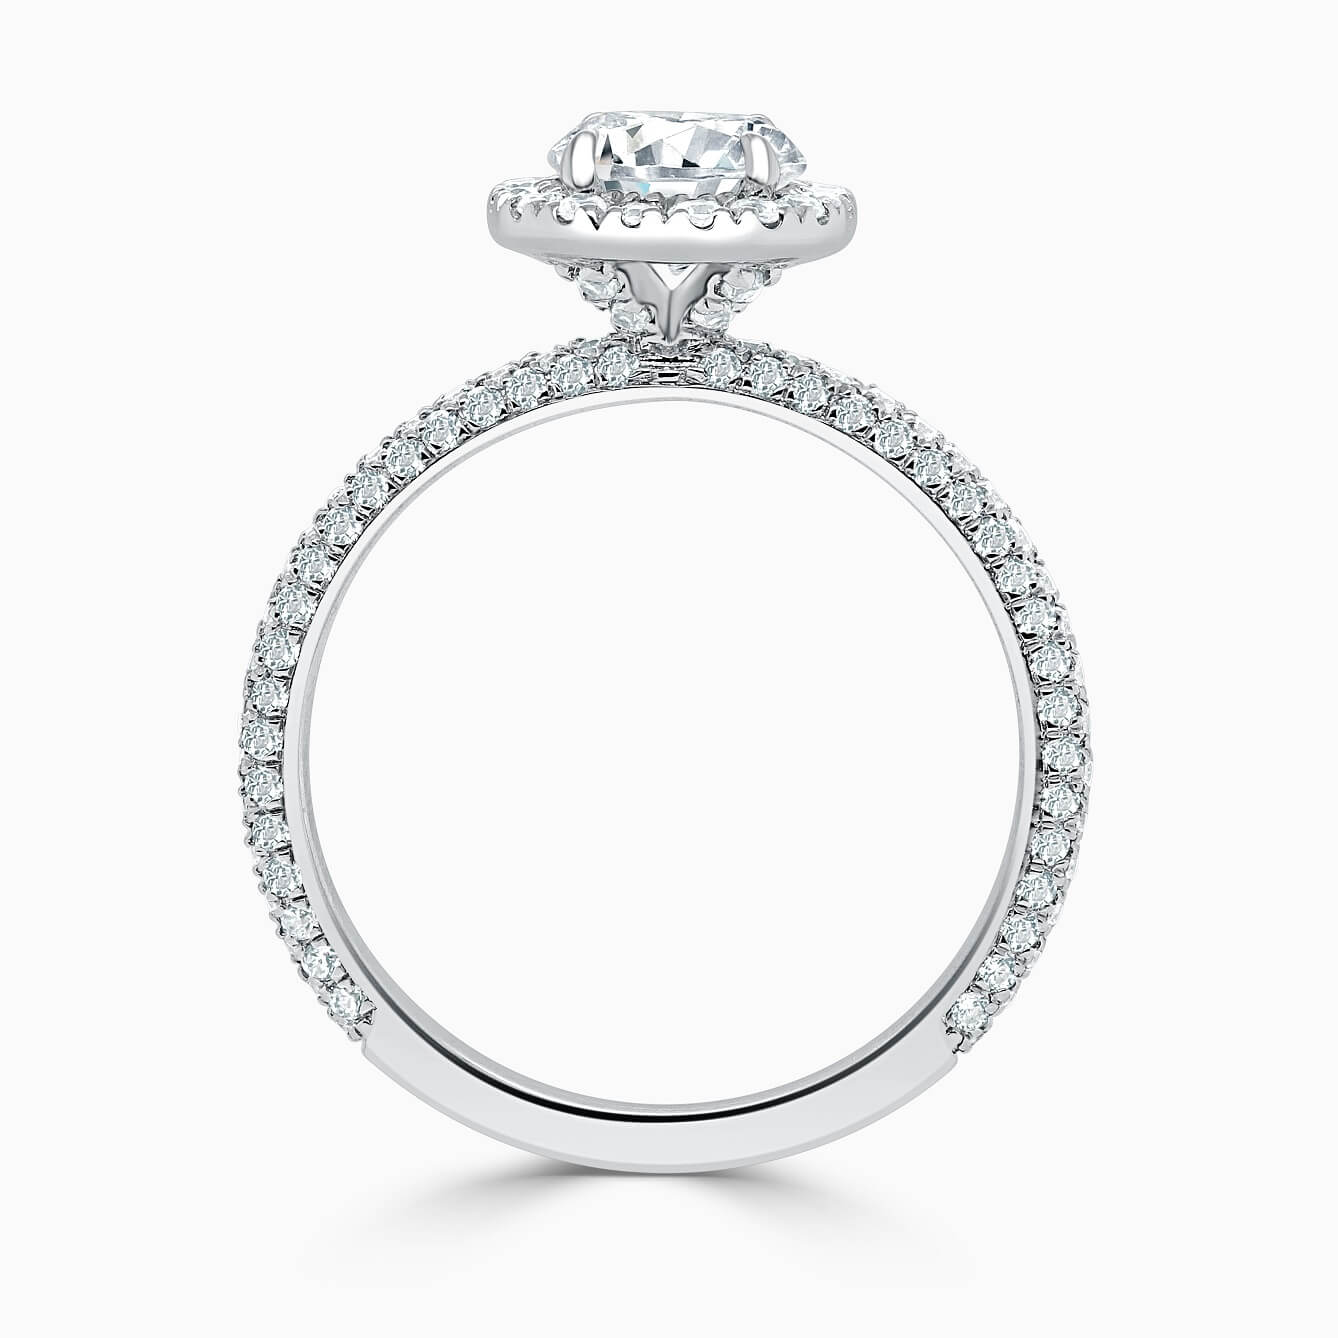 18ct White Gold Round Brilliant Halo With Micro Pave Engagement Ring